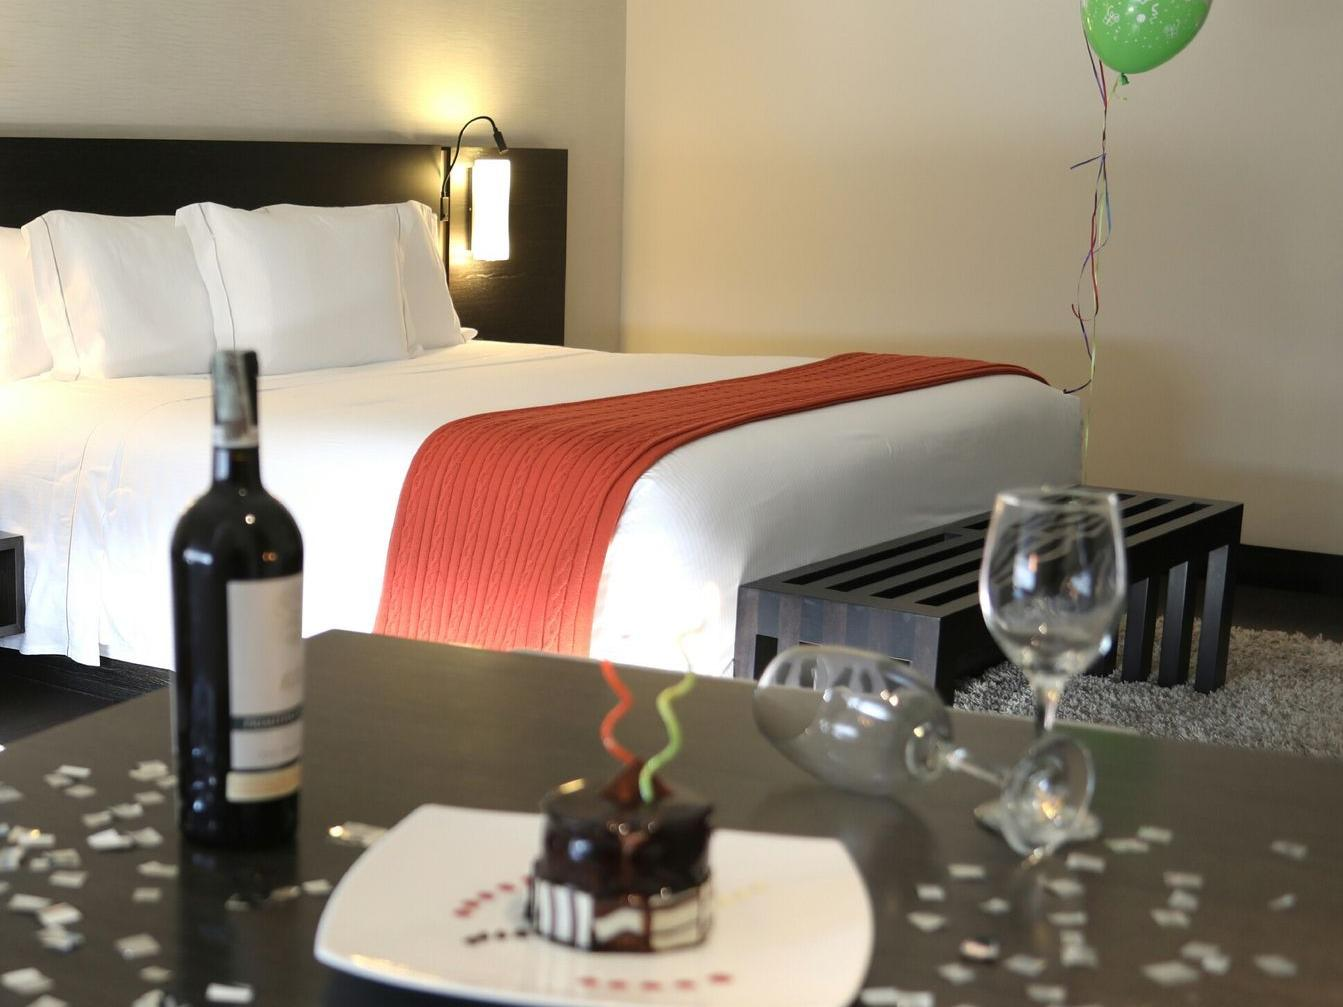 birthday celebration with cake and wine in room